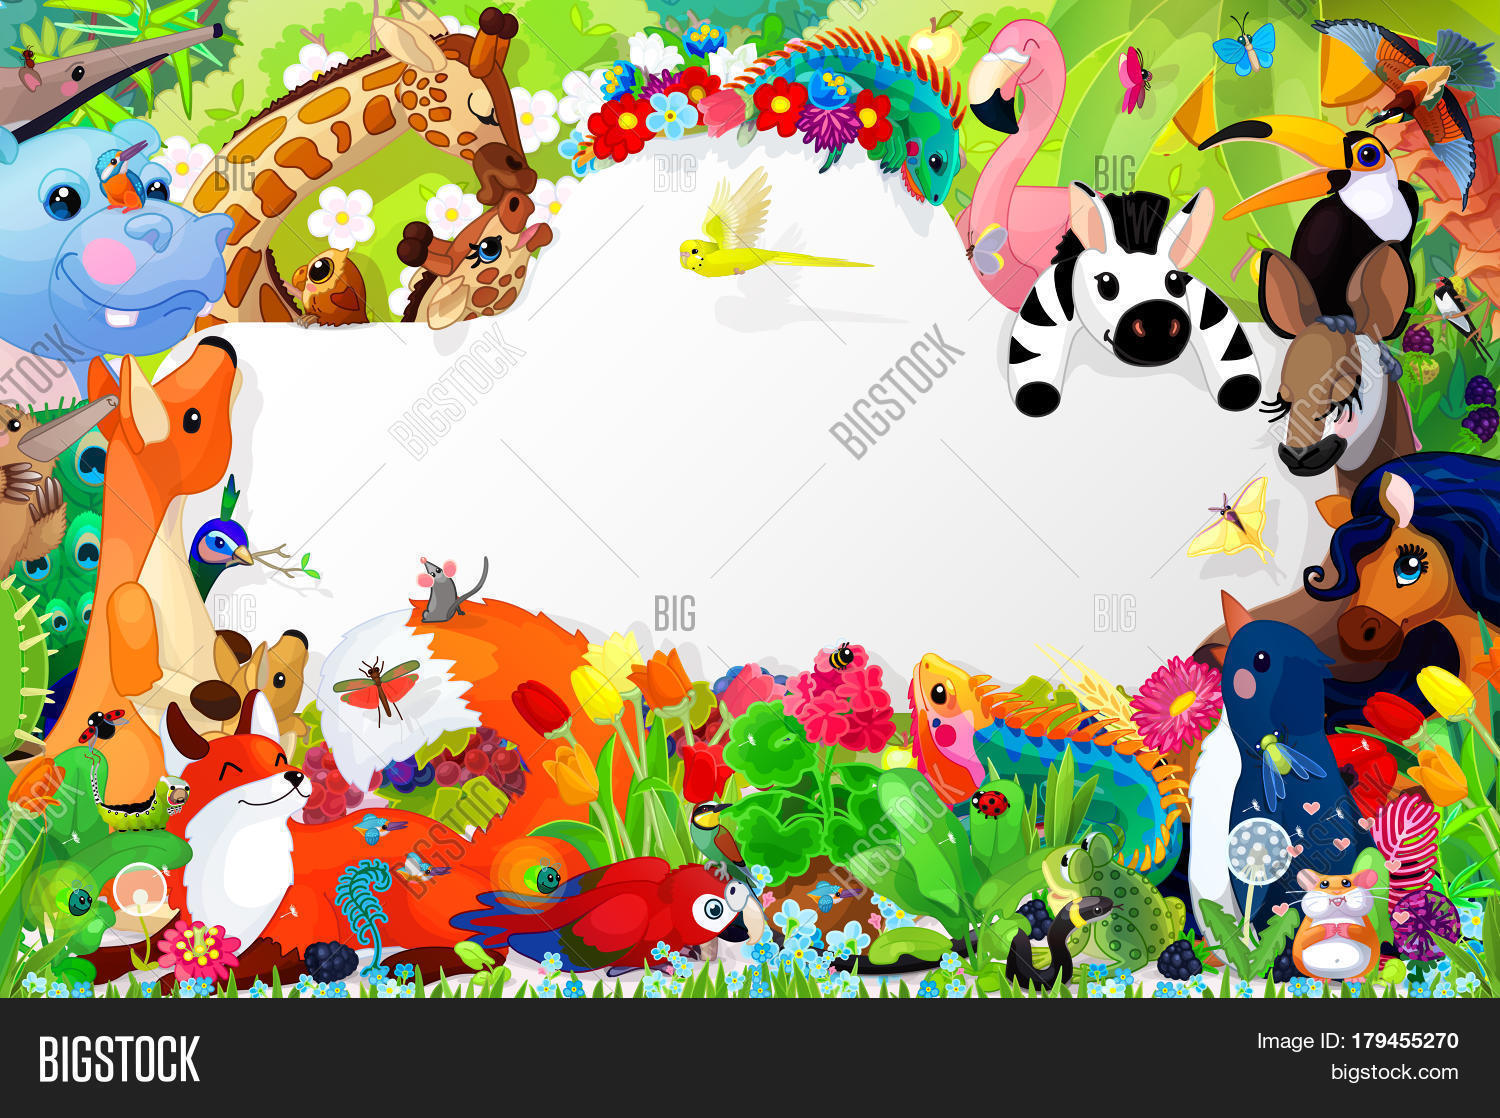 Book Cover Page Design For Kids : Cartoon animals book cover template image photo bigstock